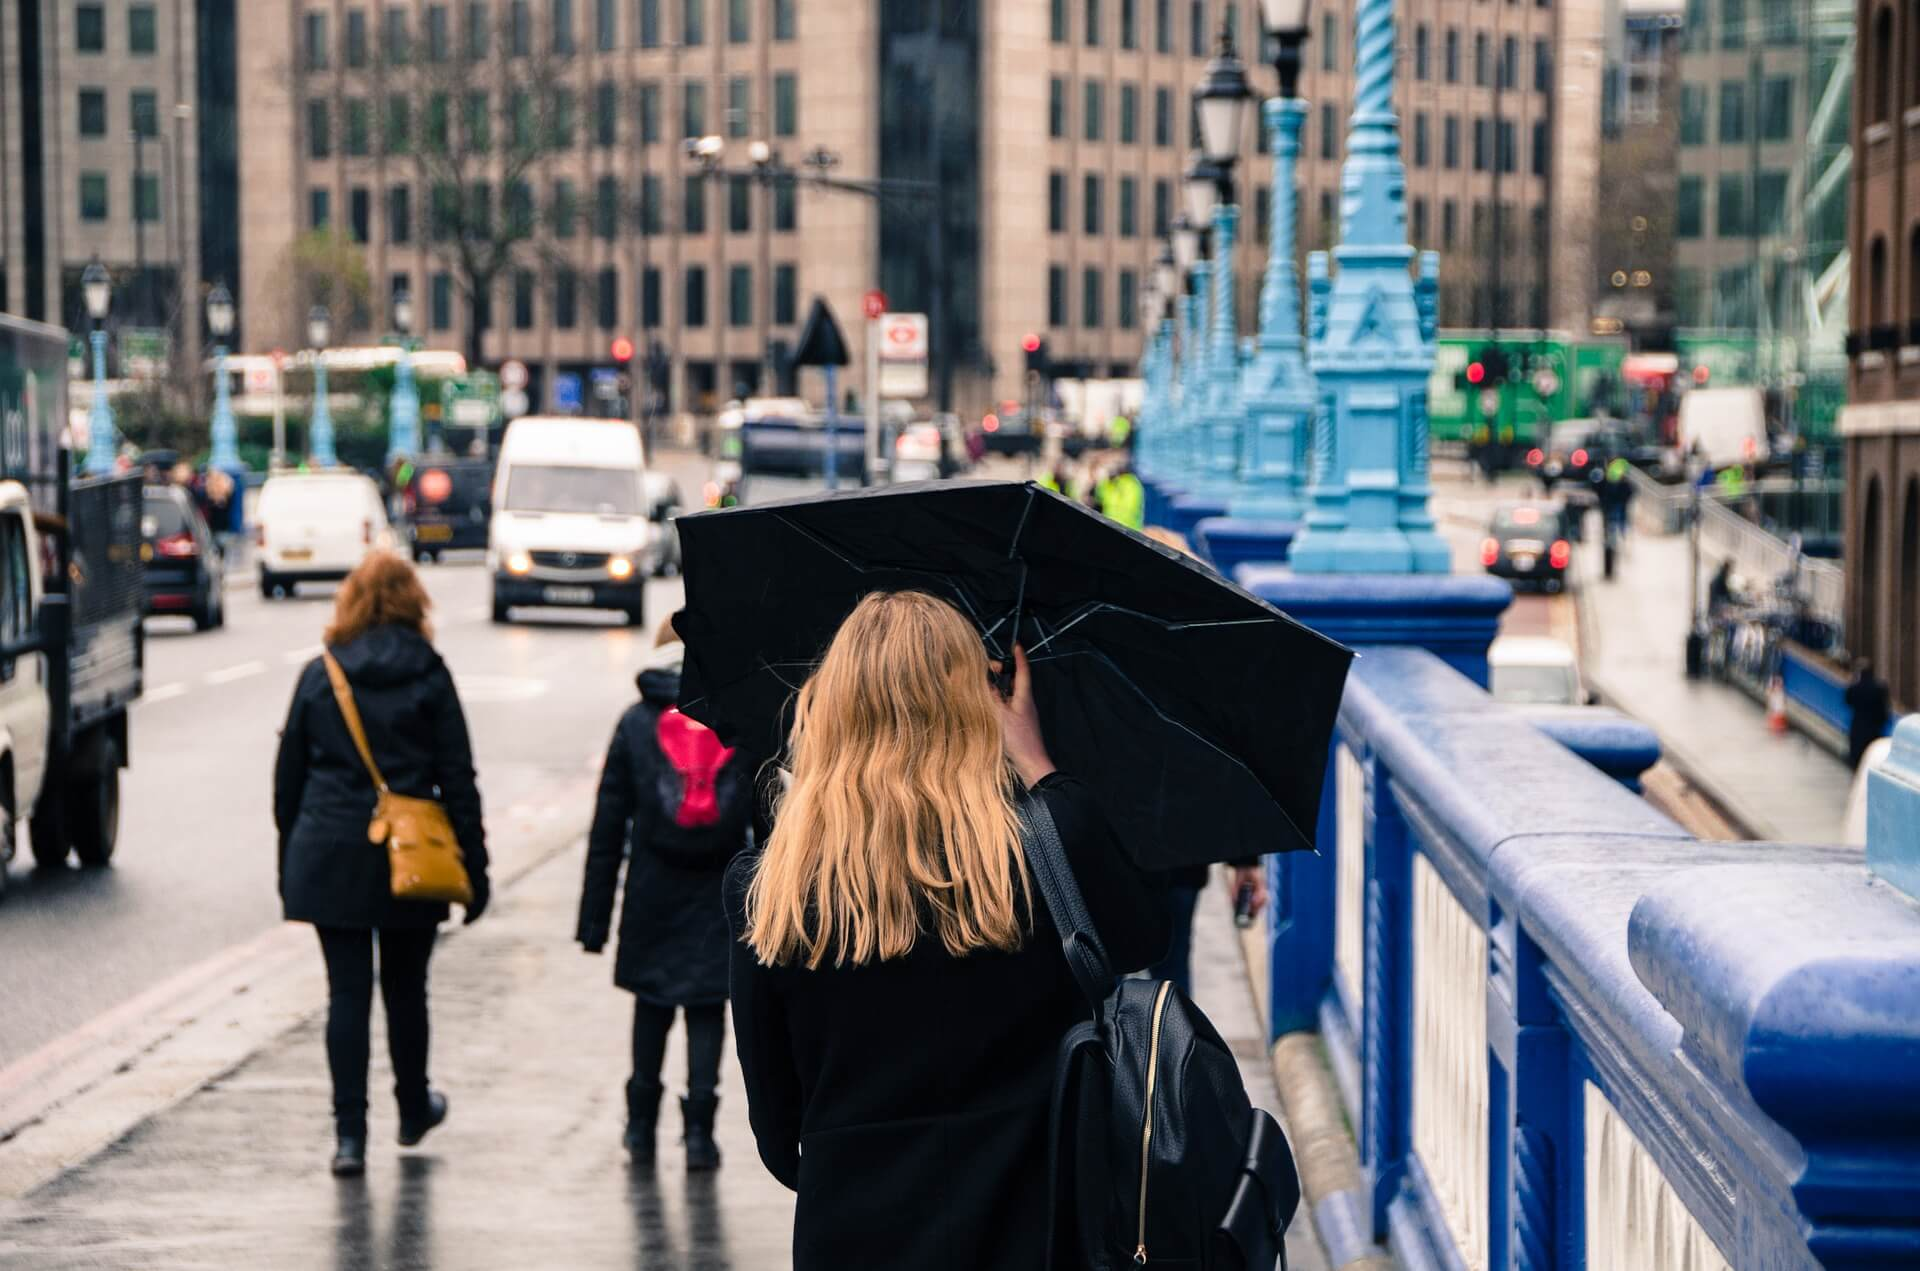 20 Things To Do In London When It Rains - Curious Claire